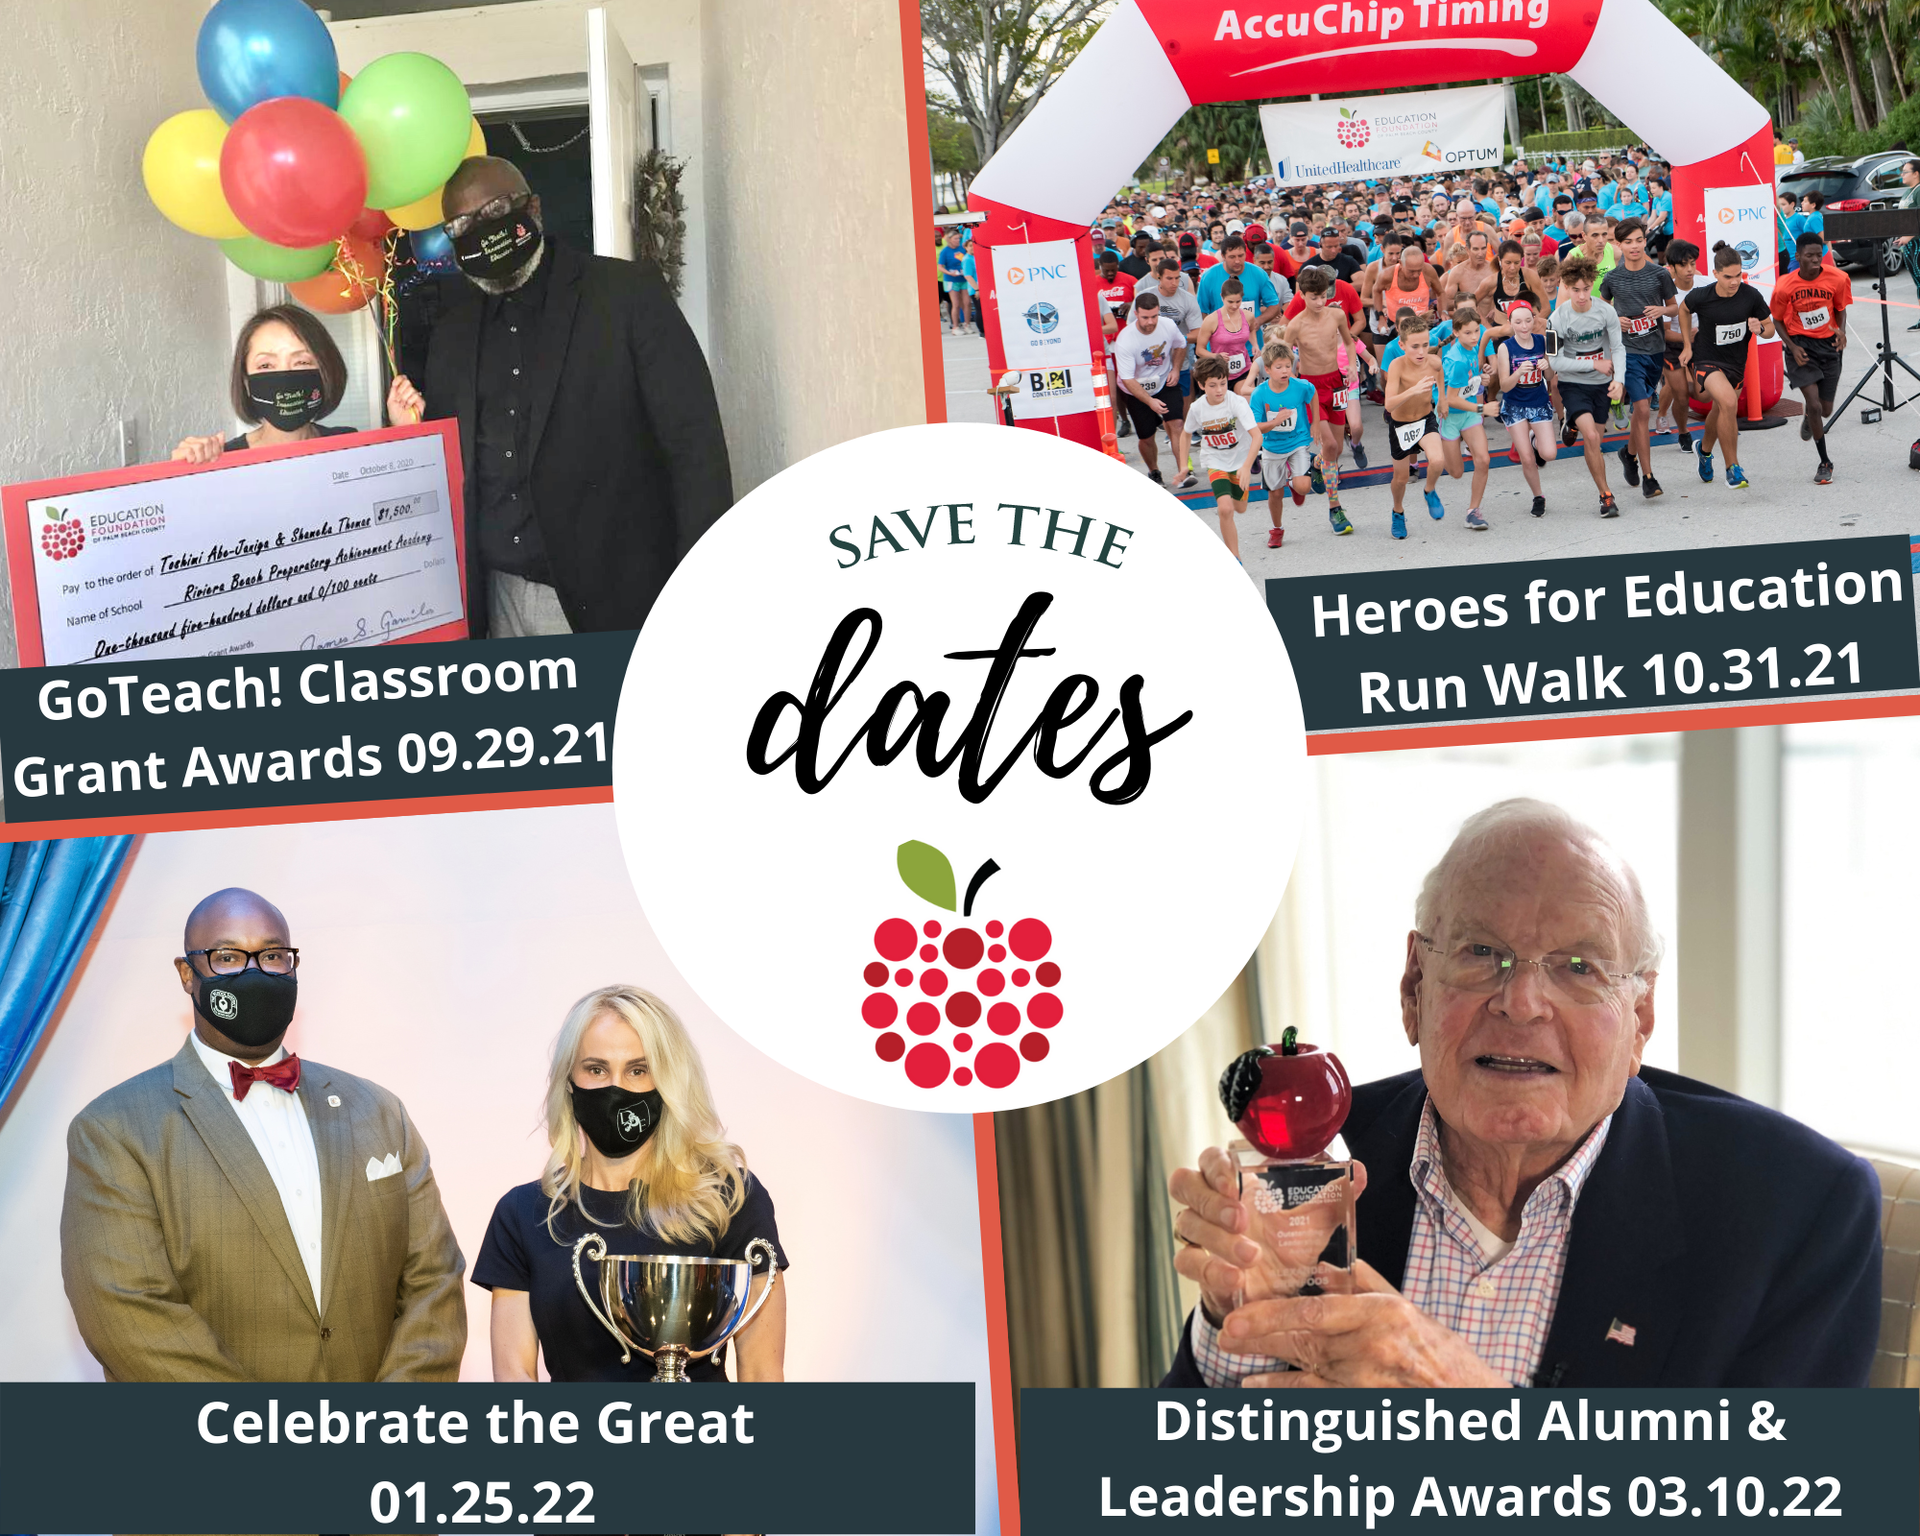 Save the Date for GoTeach (9.29.21), Heroes Run Walk (10.31.21), Celebrate the Great (01.25.22) and Distinguished Alumni & Ldshp Awards (03.10.22)